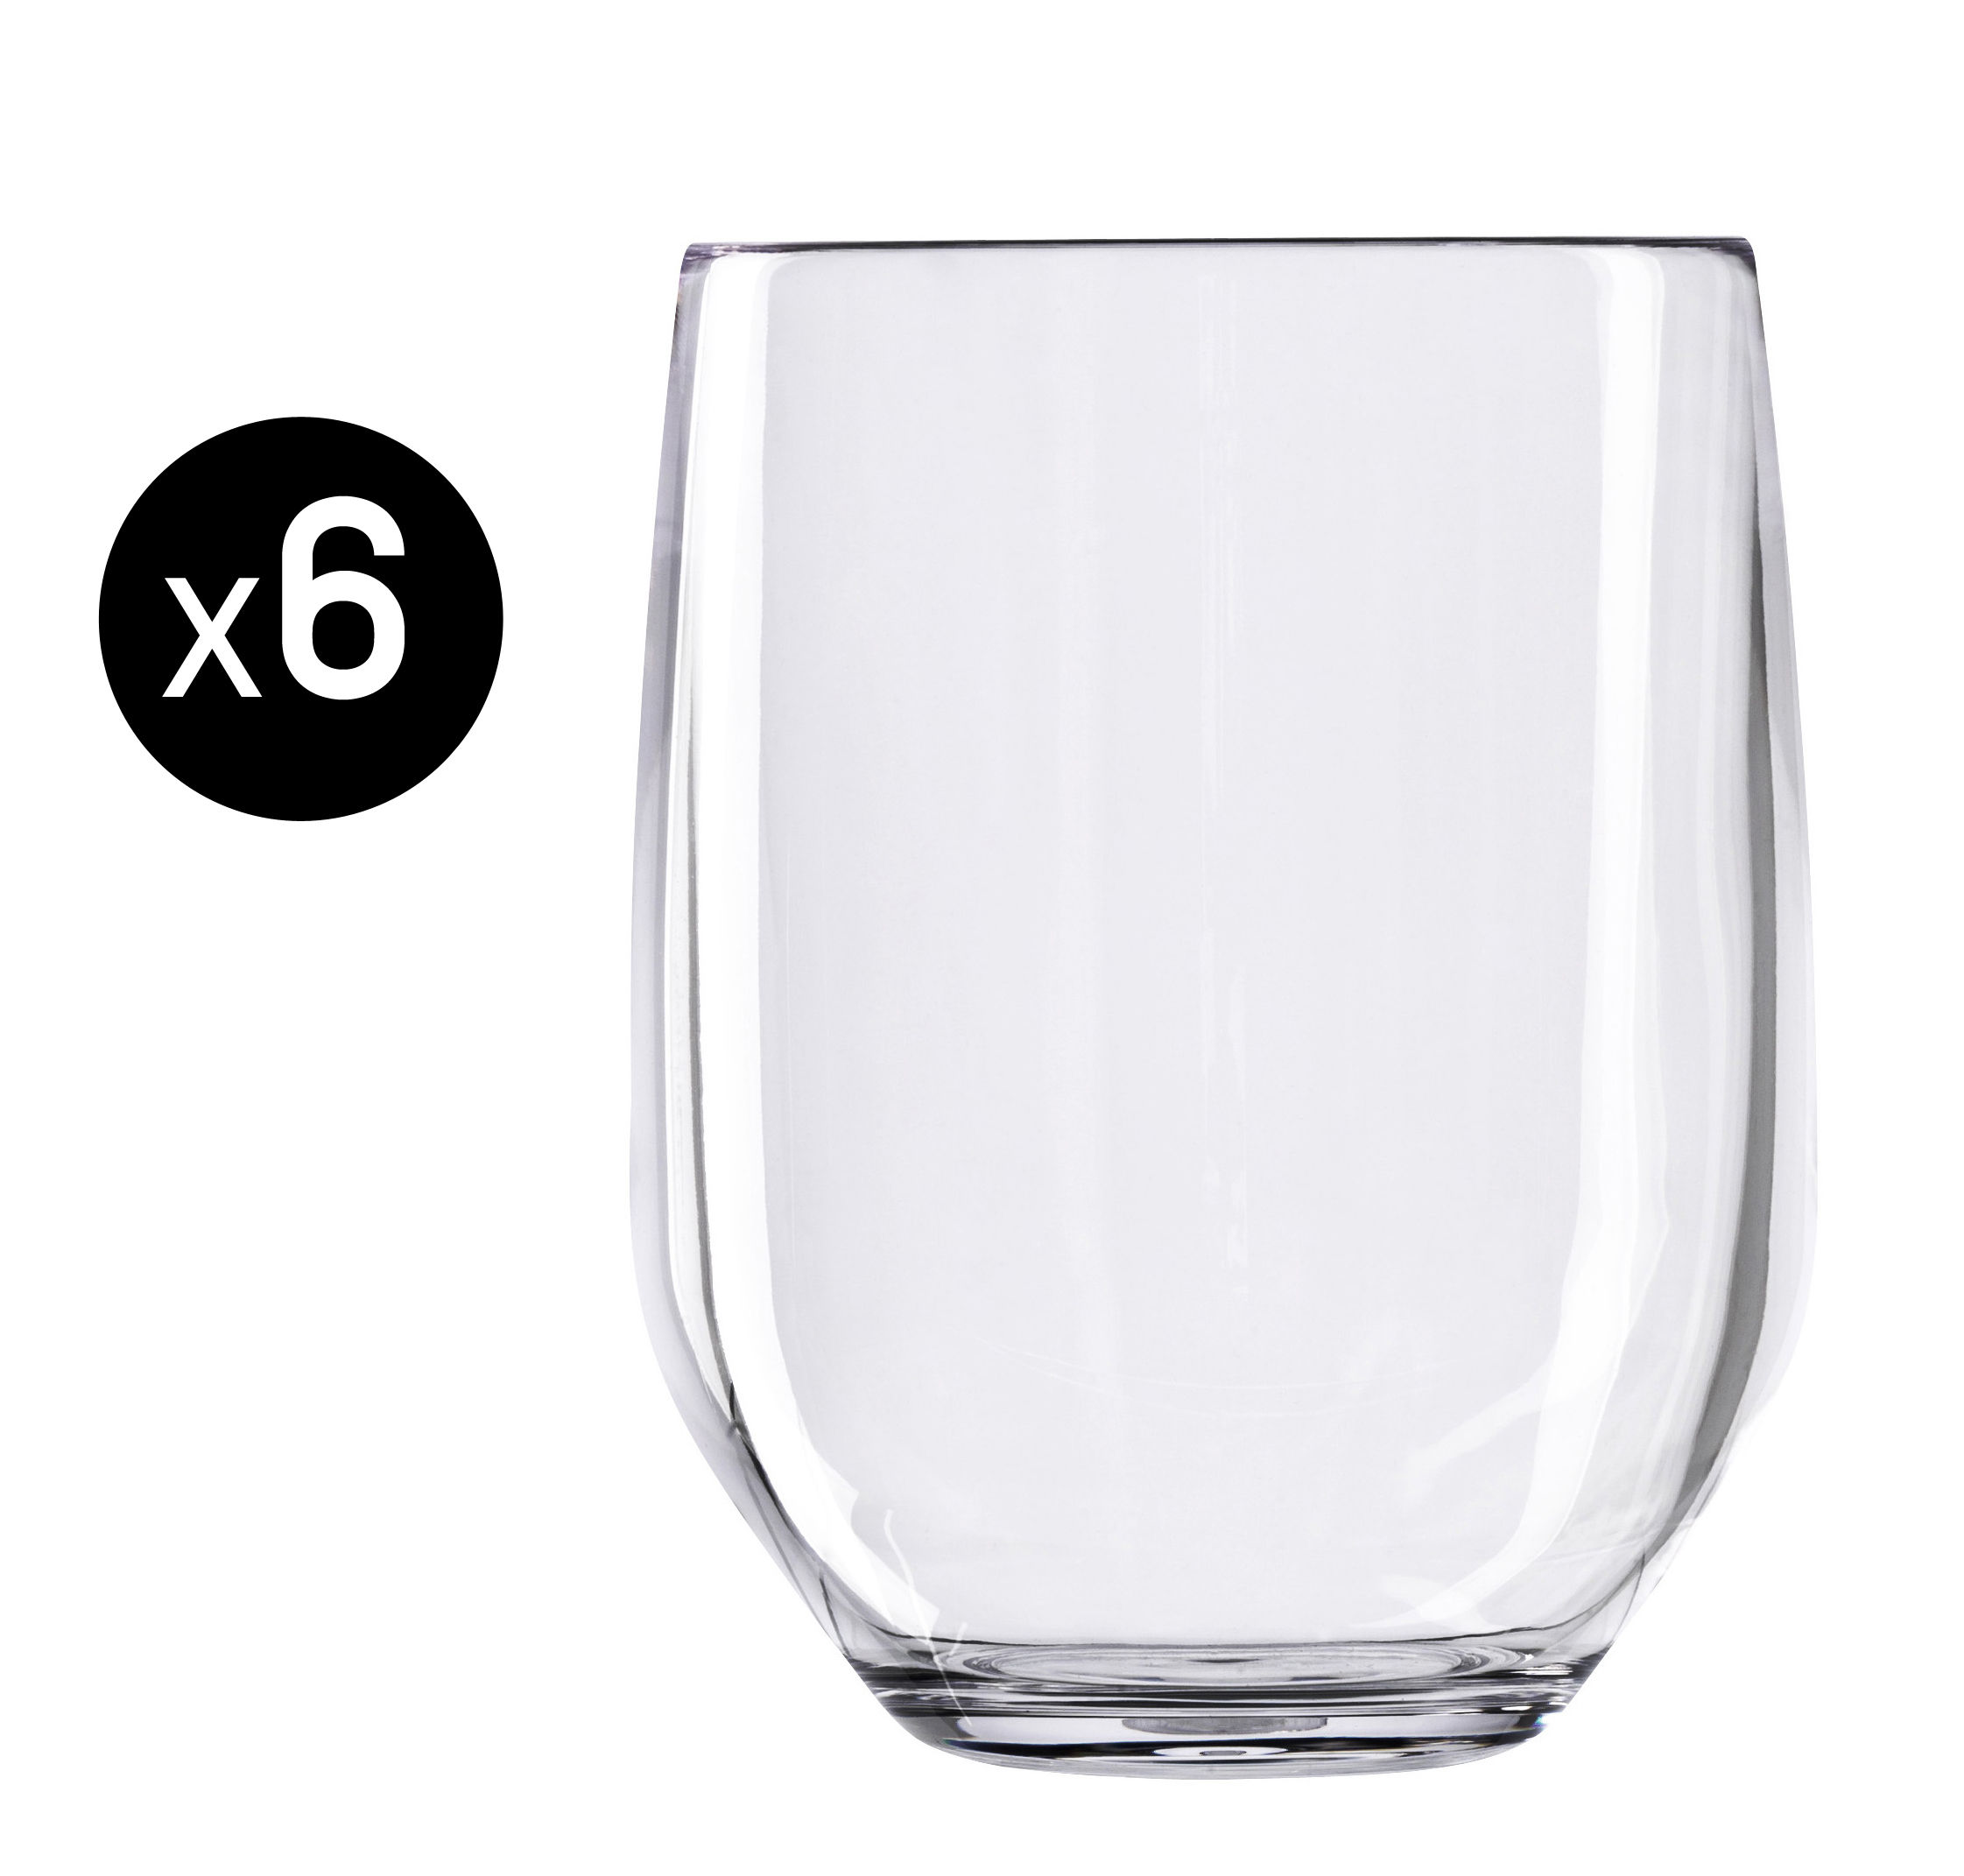 Tableware - Wine Glasses & Glassware - Vertical Party Beach Whisky glass - Set of 6 - 42 cl by Italesse - Clear - Policrystal